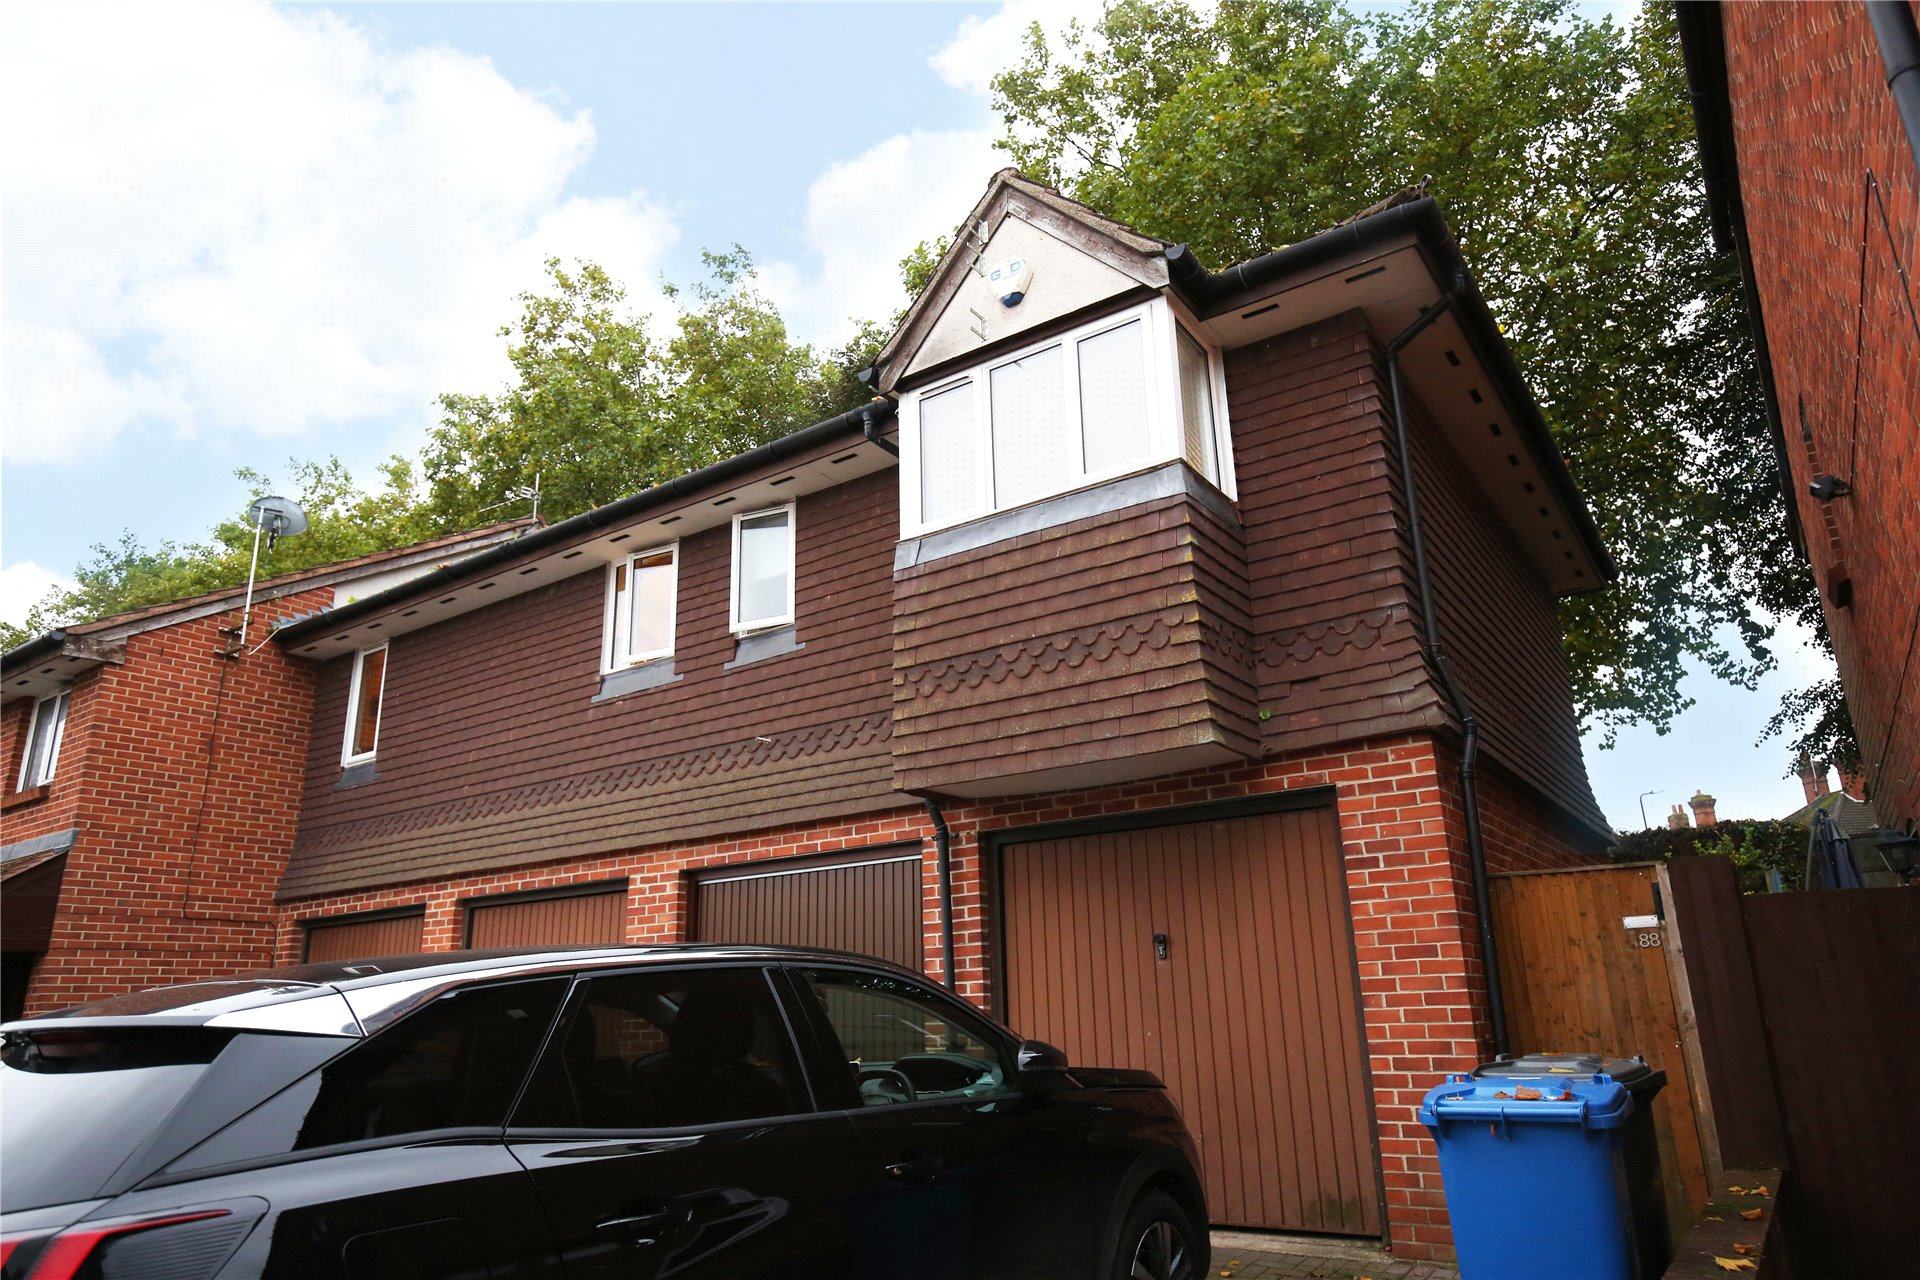 2 Bedrooms Maisonette Flat for sale in Stonefield Park, Maidenhead, Berkshire, SL6